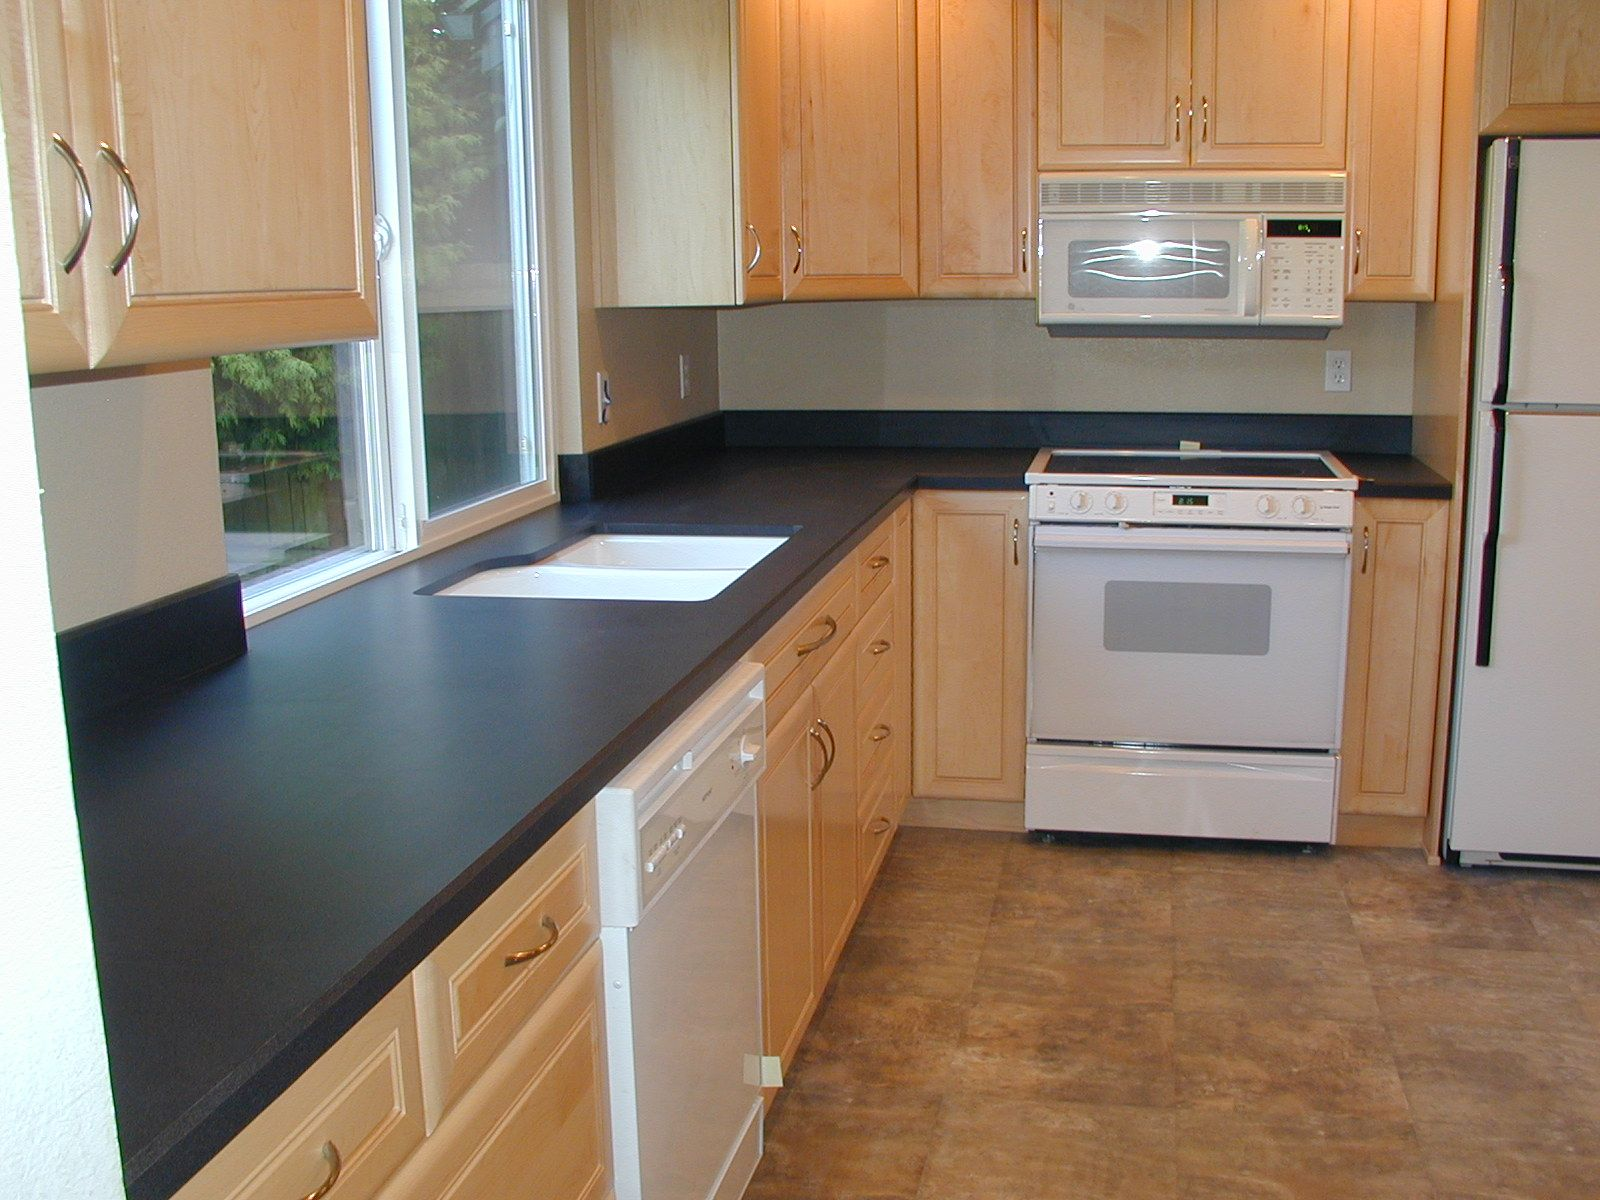 Kitchen Ideas With Dark Countertops | Countertop Design And Installation,  Laminate Kitchen Countertop .